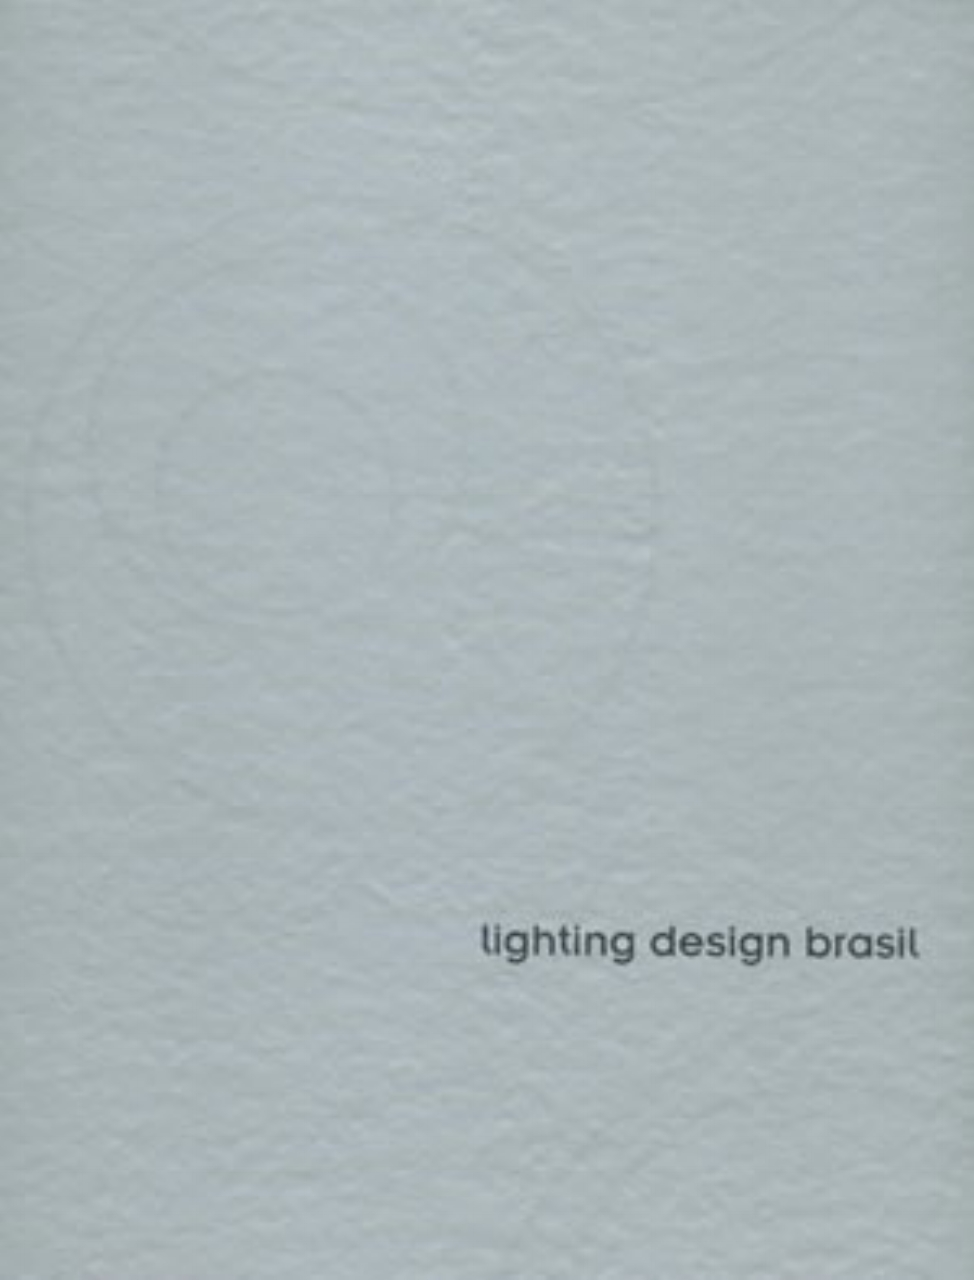 LightingDesignBrasil.jpg